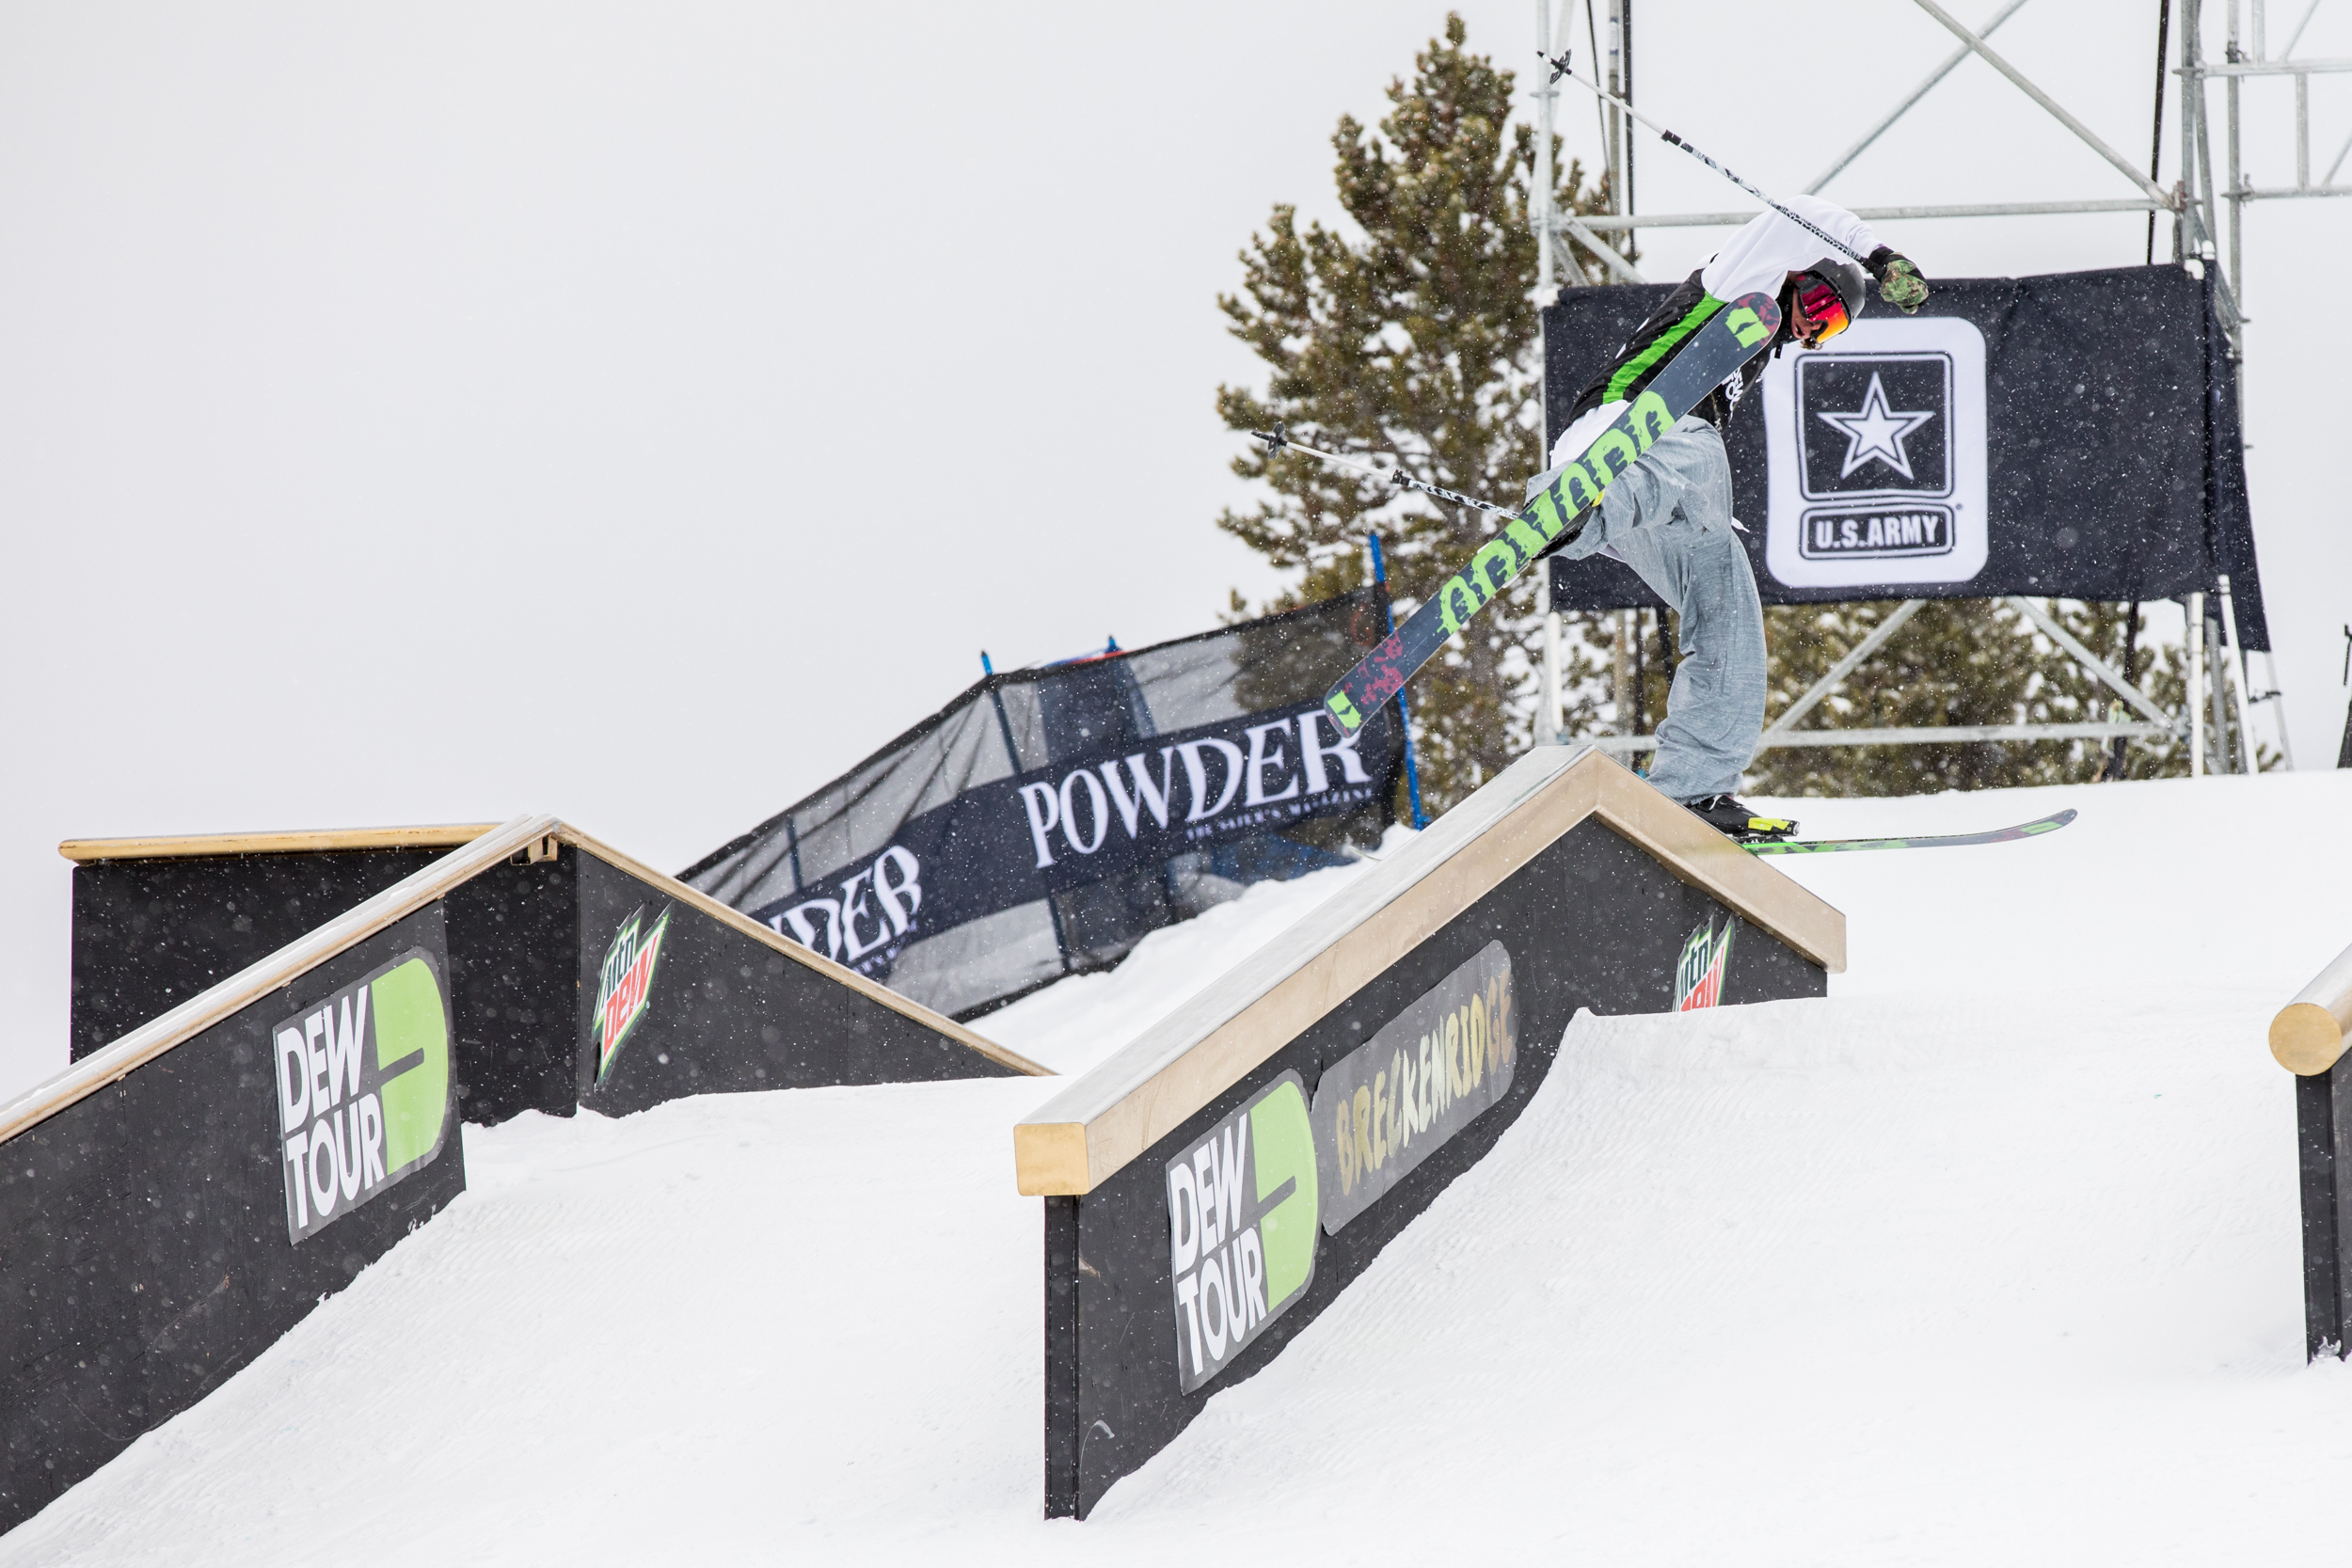 Quinn Wolferman showcased his unique style competing for Armada in the rail jam.